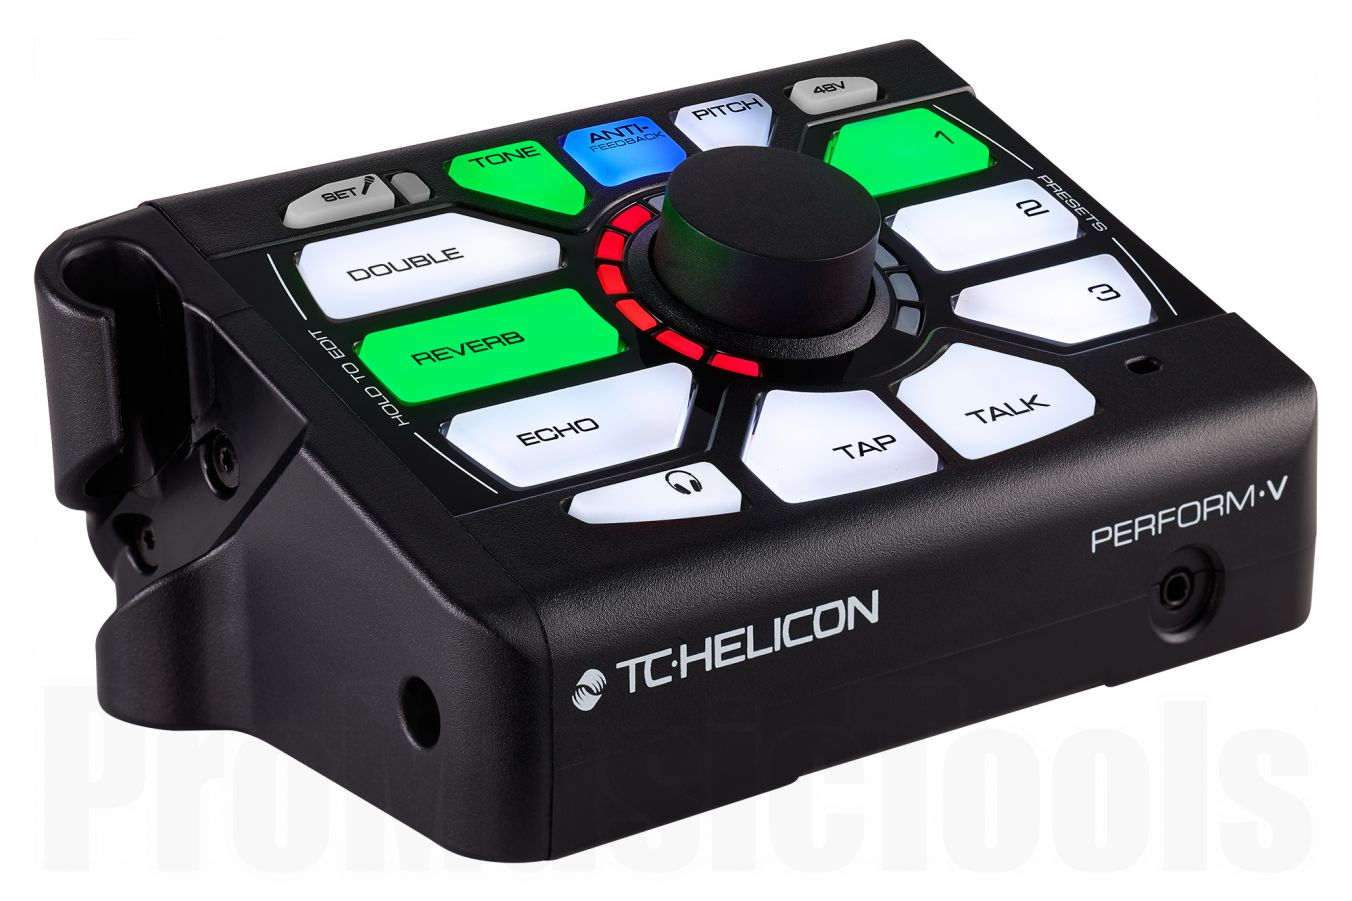 TC Helicon Perform-V - b-stock (1x opened box)